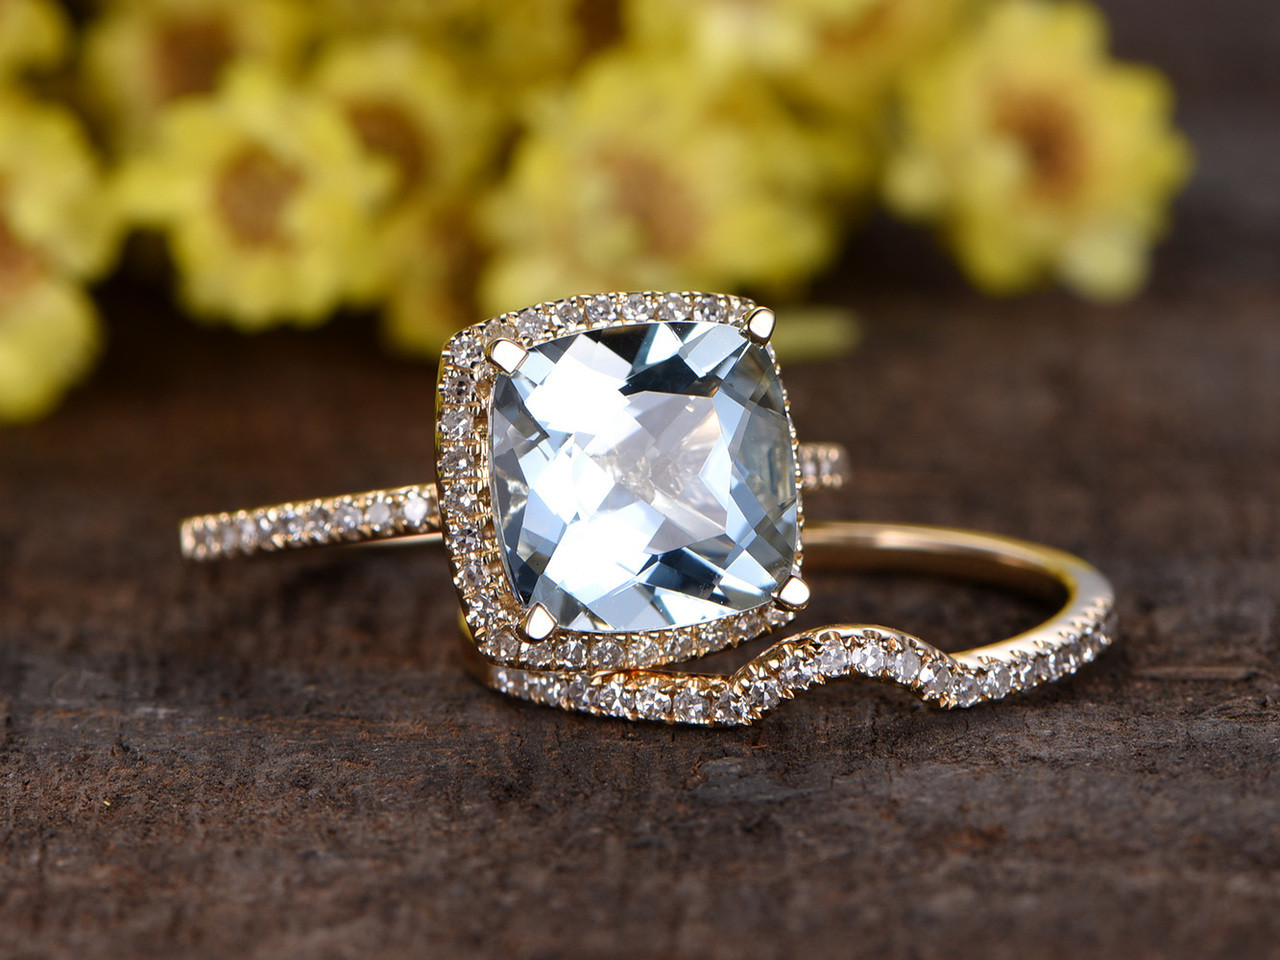 Amazing 3 Carat Cushion Cut Aquamarine Bridal Set Diamond Wedding Ring 14k Yellow  Gold Thin Pave Curve